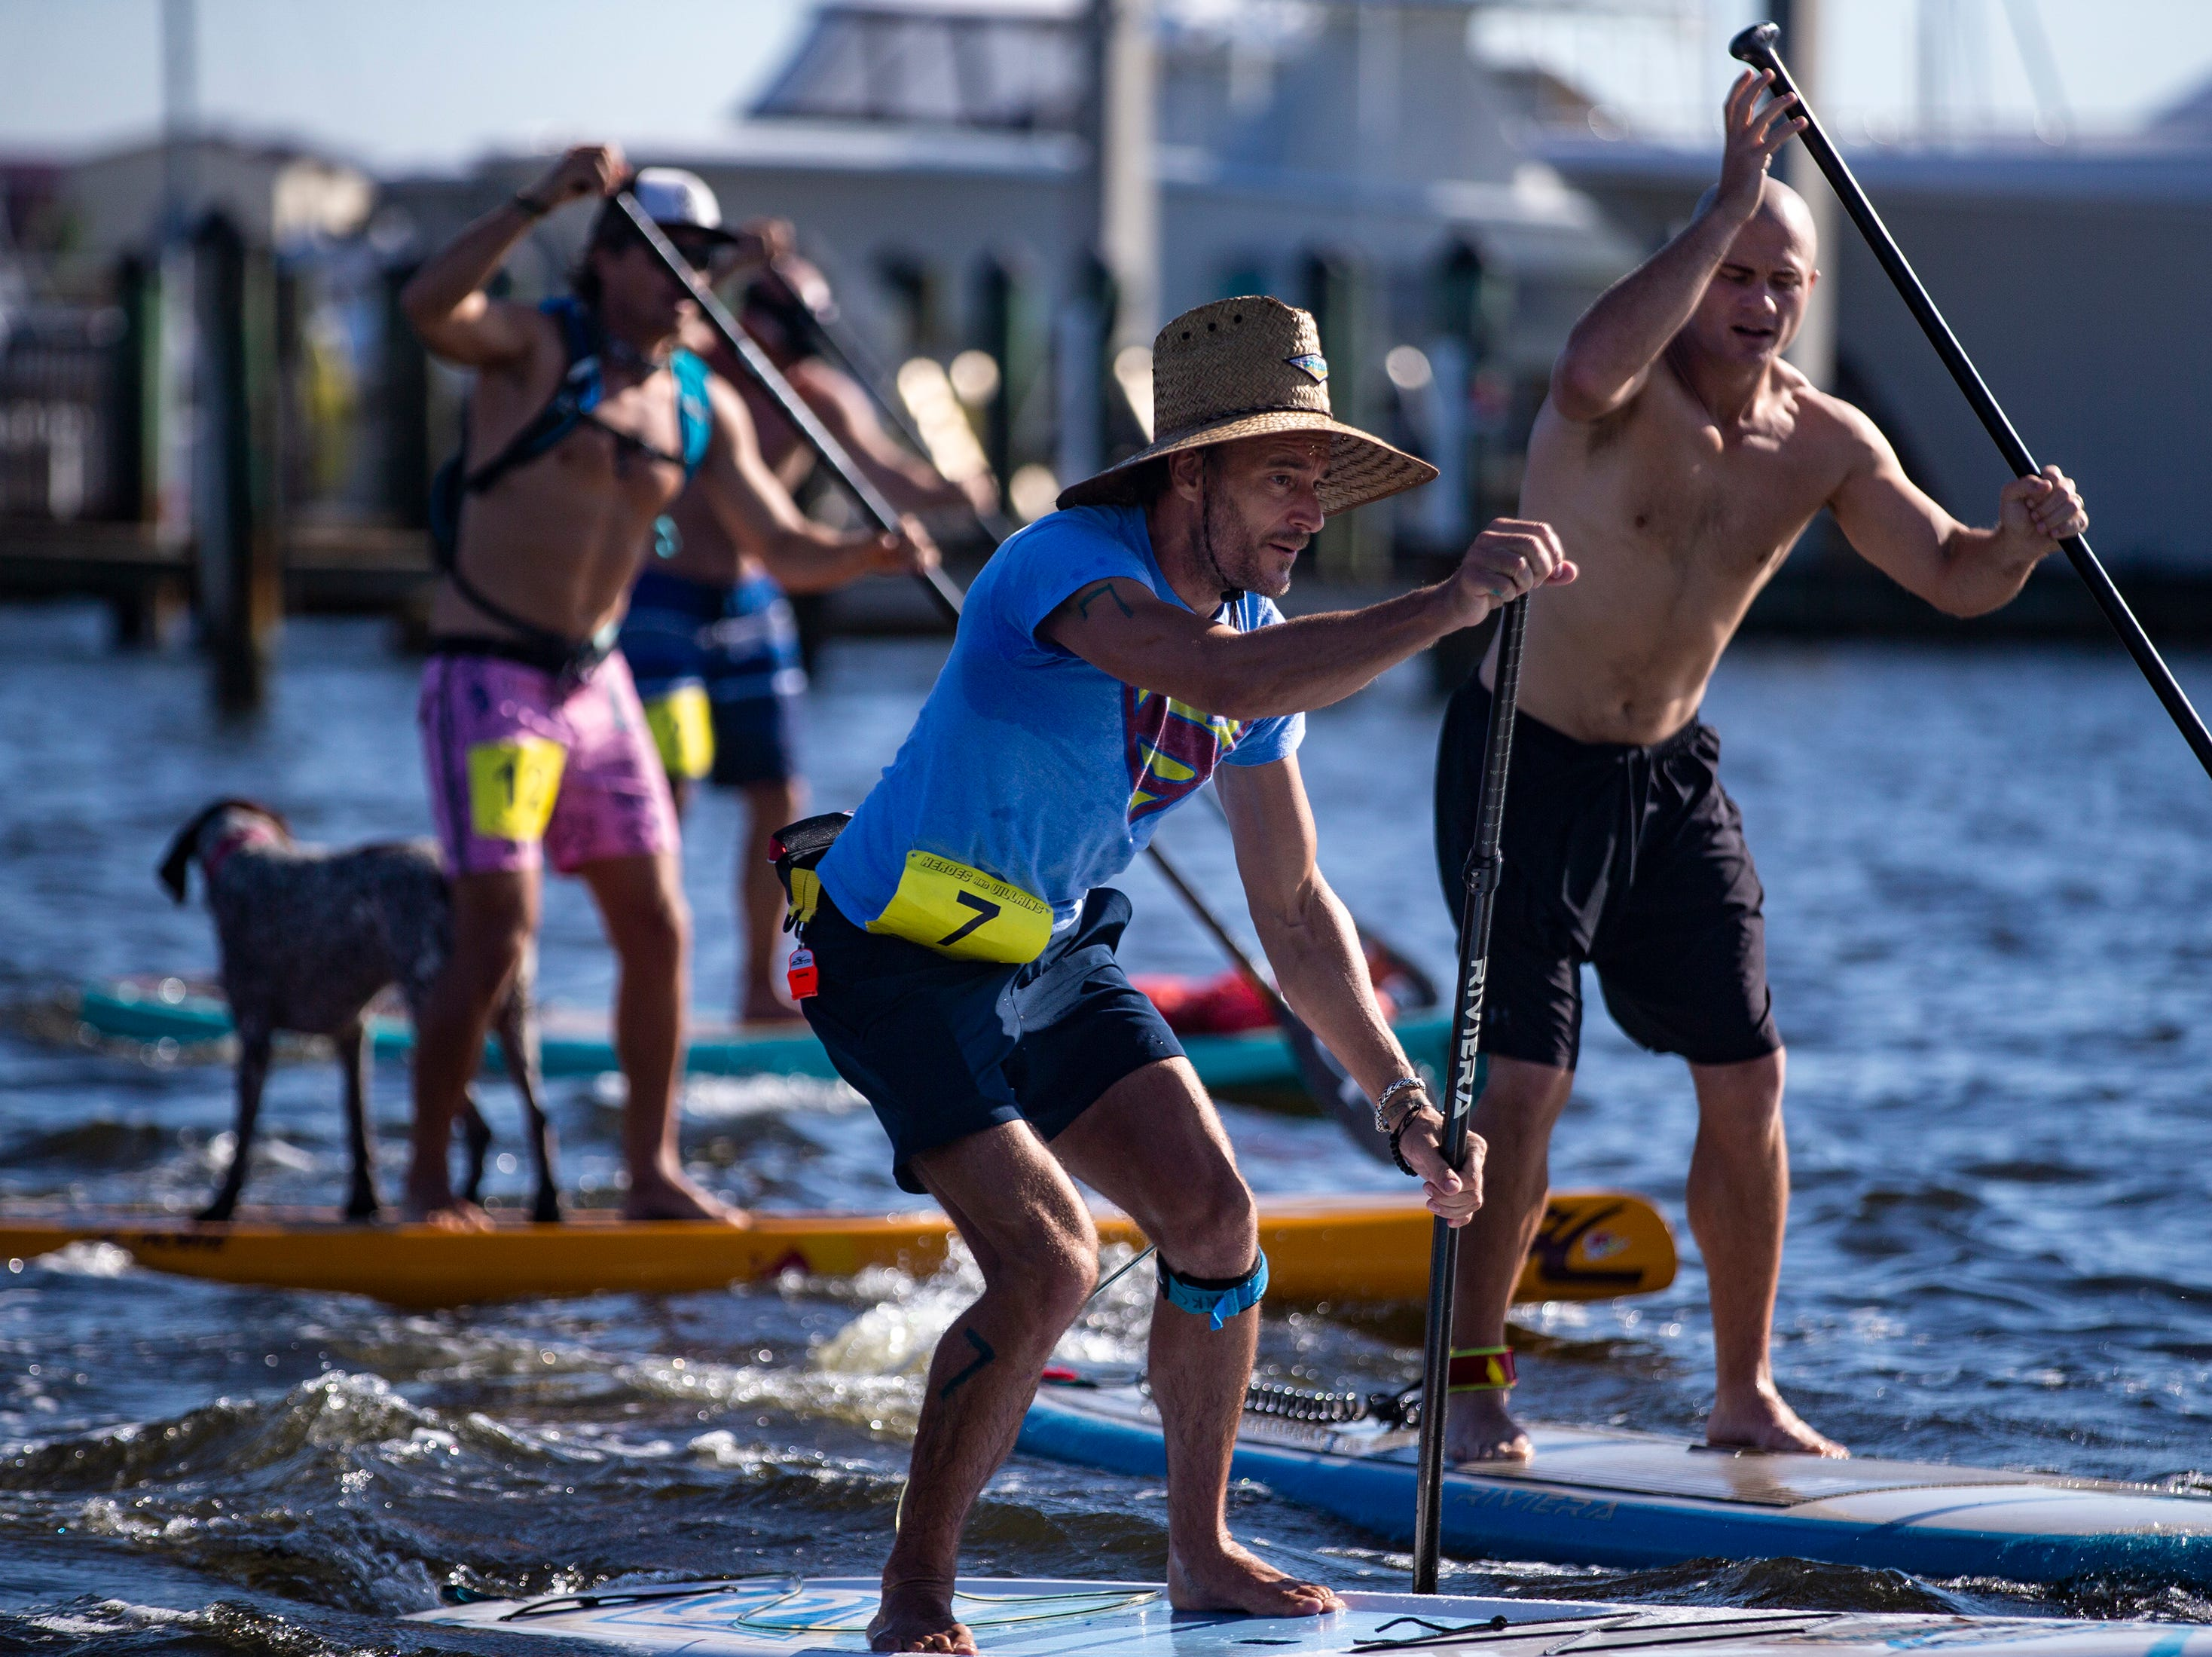 Simon Tracy of Naples competes in the amateur stand up paddleboard race, Saturday, May 11, 2019, during the 43rd annual Great Dock Canoe Race at Crayton Cove in Naples.